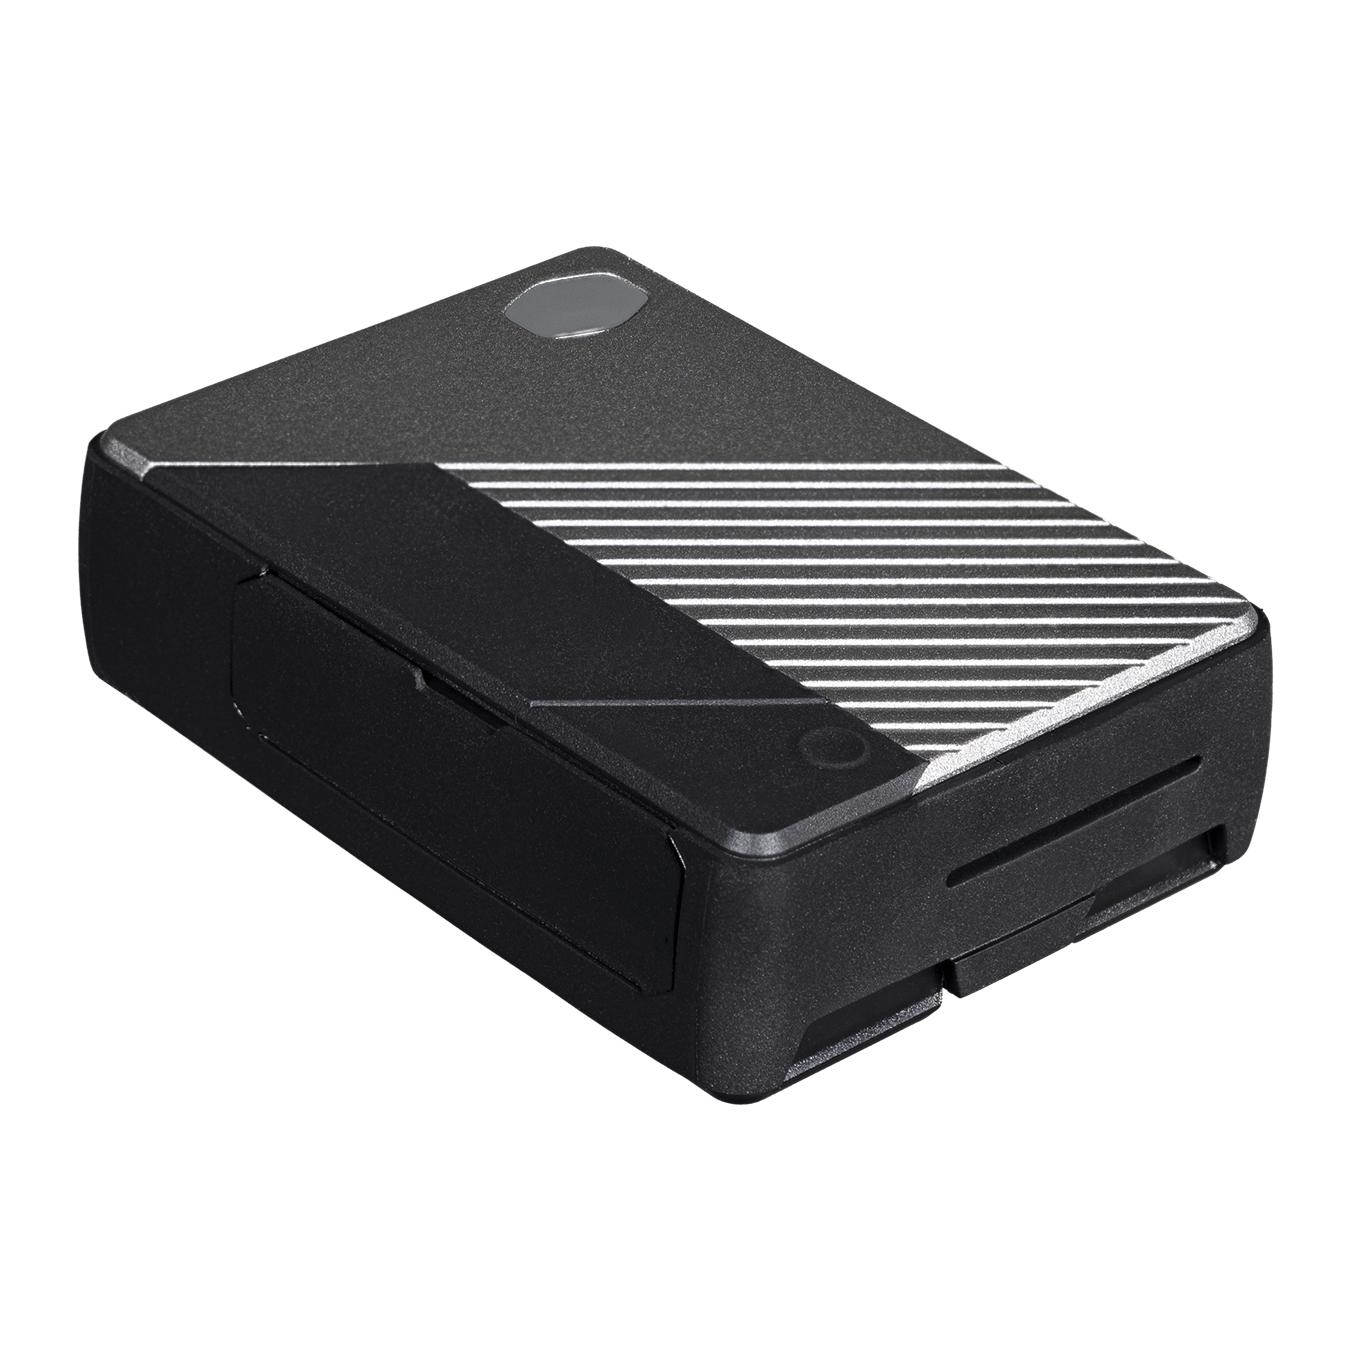 45 degree angle view of the Pi Case 40 V2 with a silver front panel, small Cooler Master halo logo and TPU bumper.